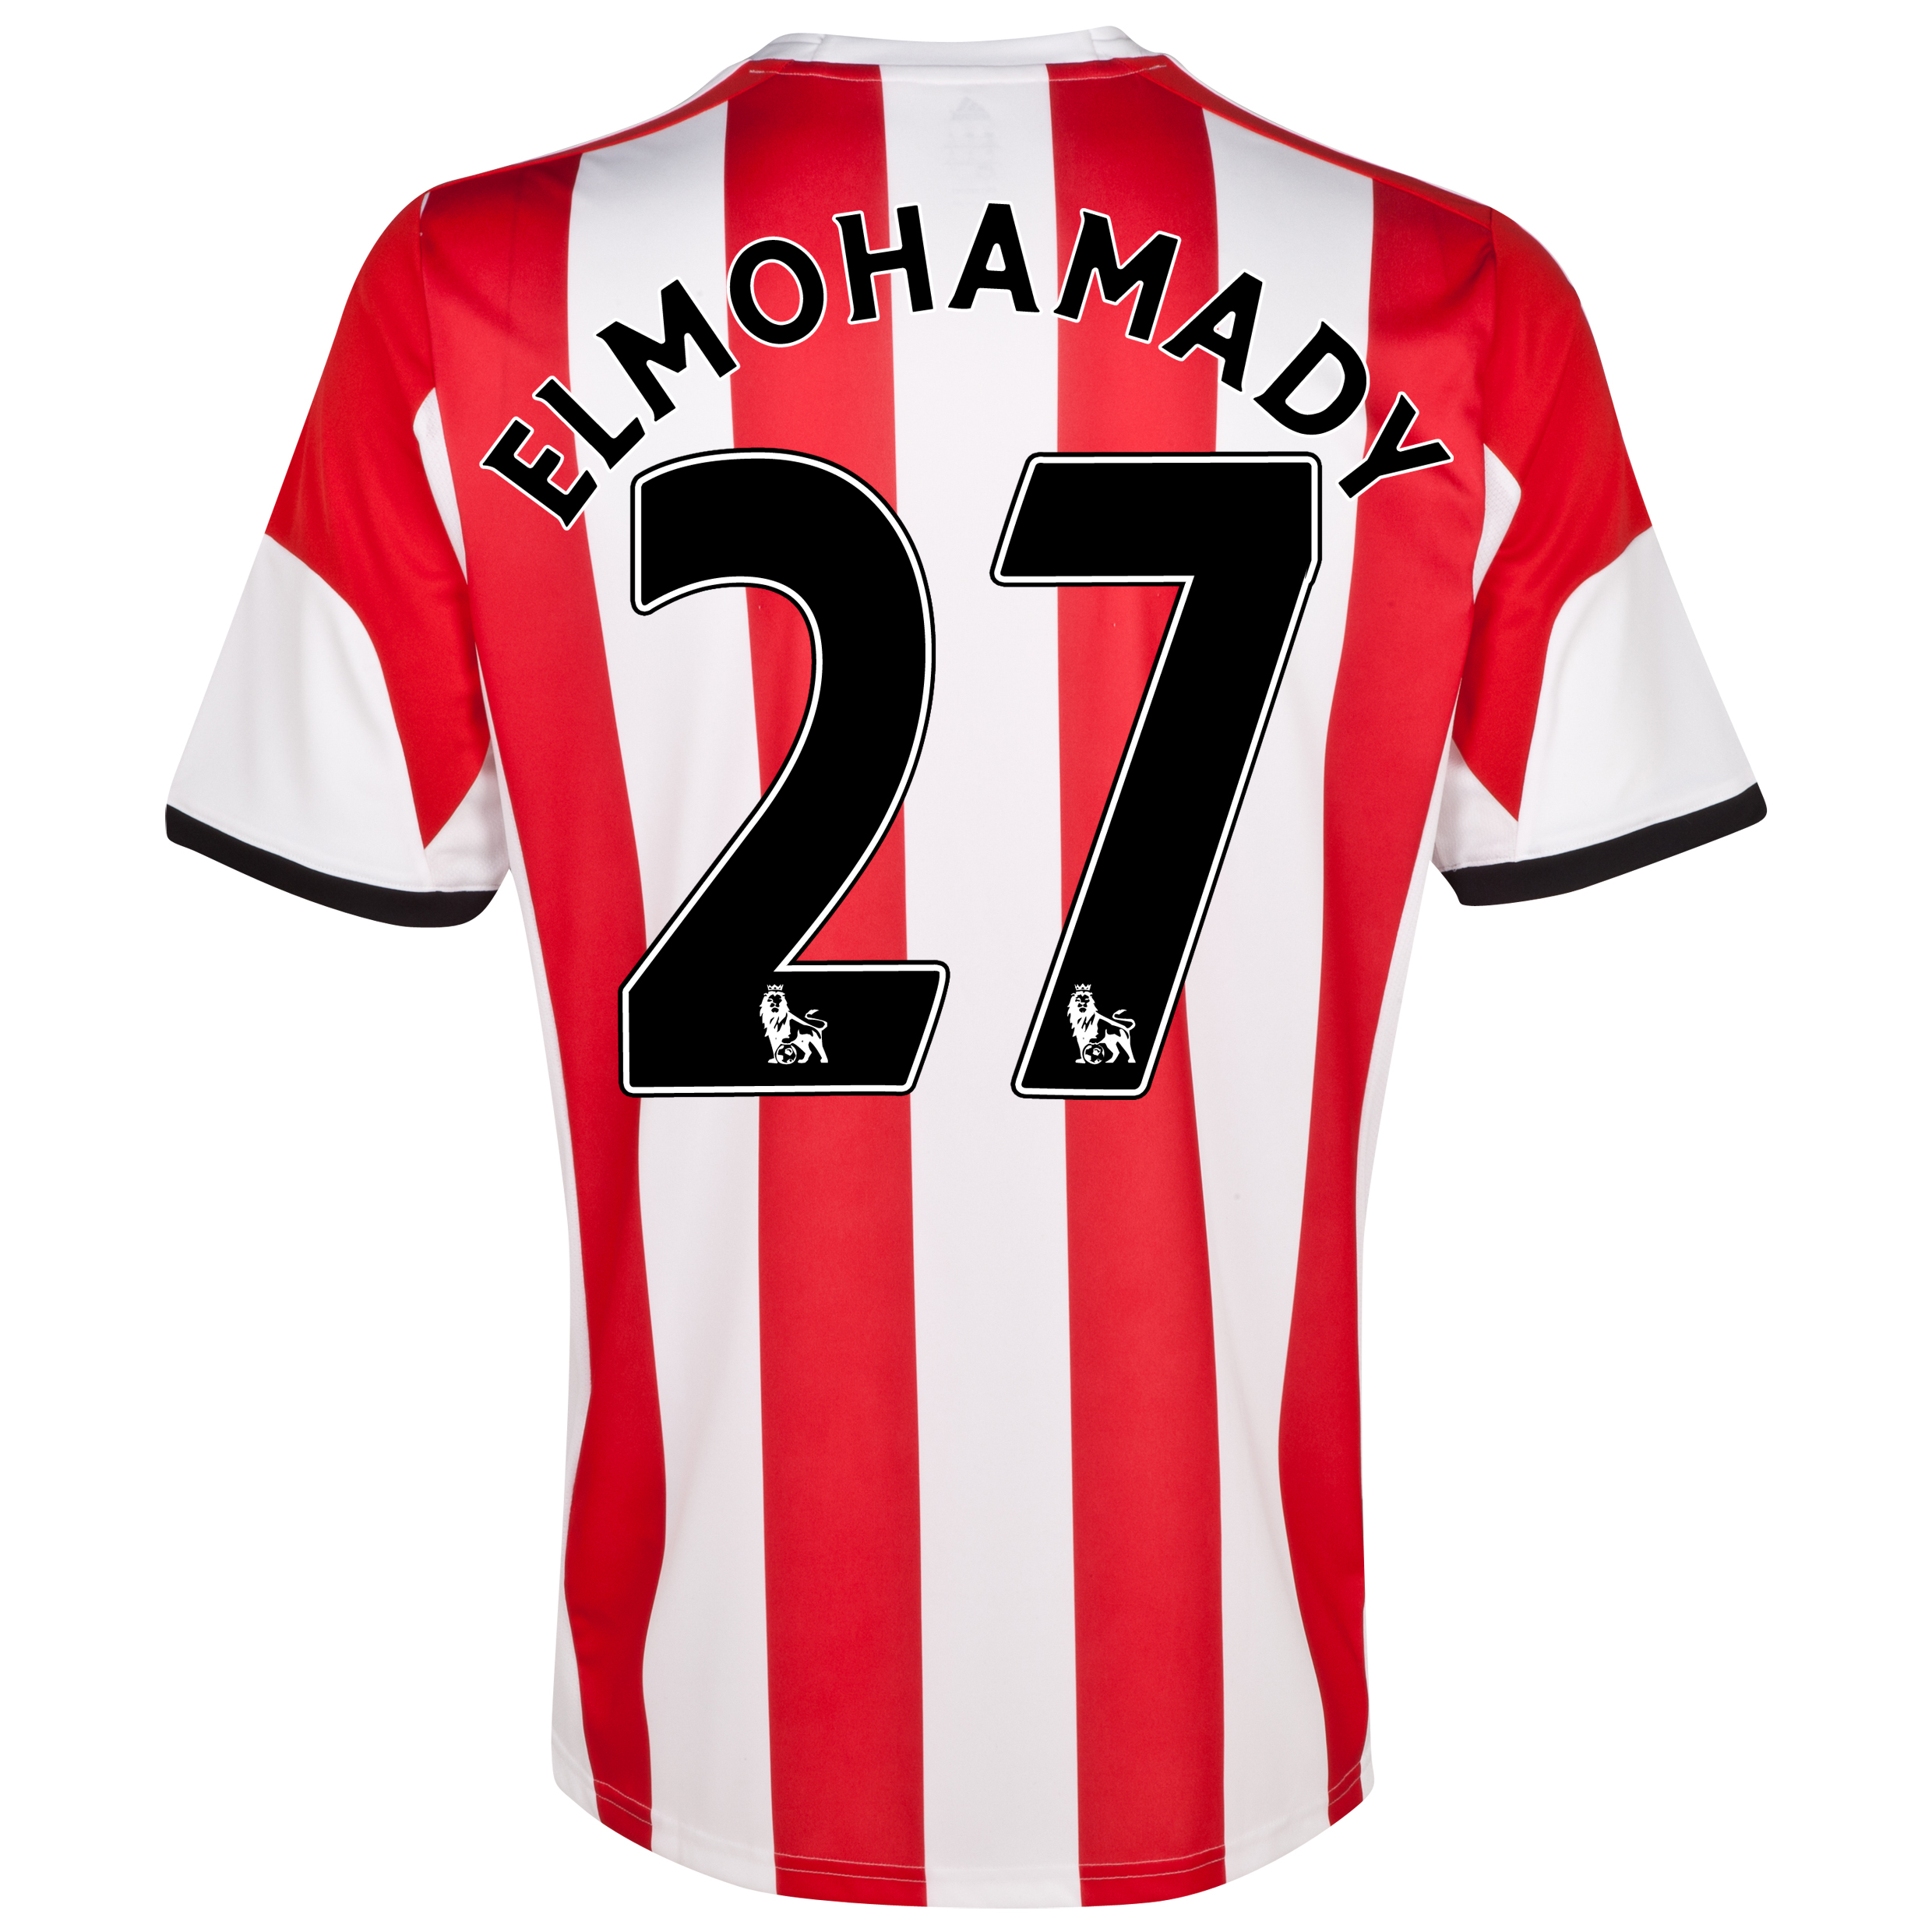 Sunderland Home Shirt 2013/14 - Junior with Elmohamady 27 printing